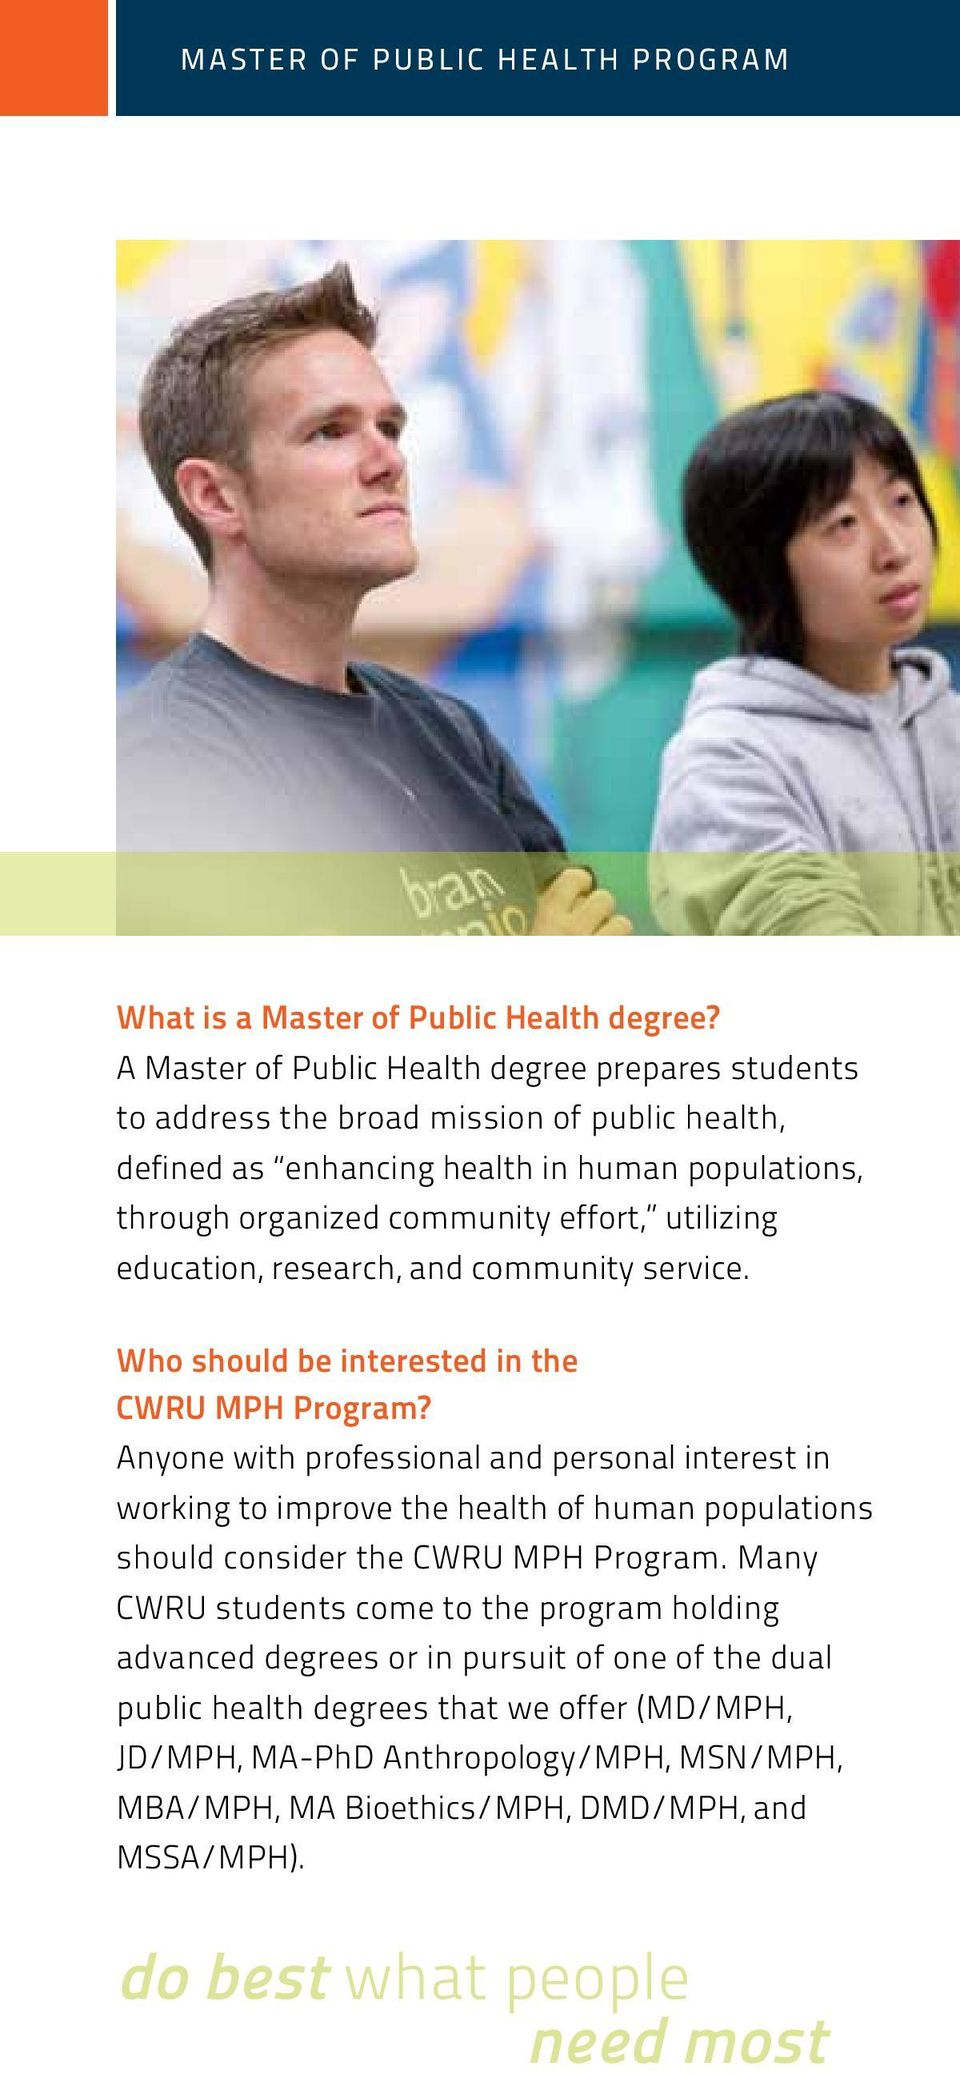 utilizing education, research, and community service. Who should be interested in the CWRU MPH Program?